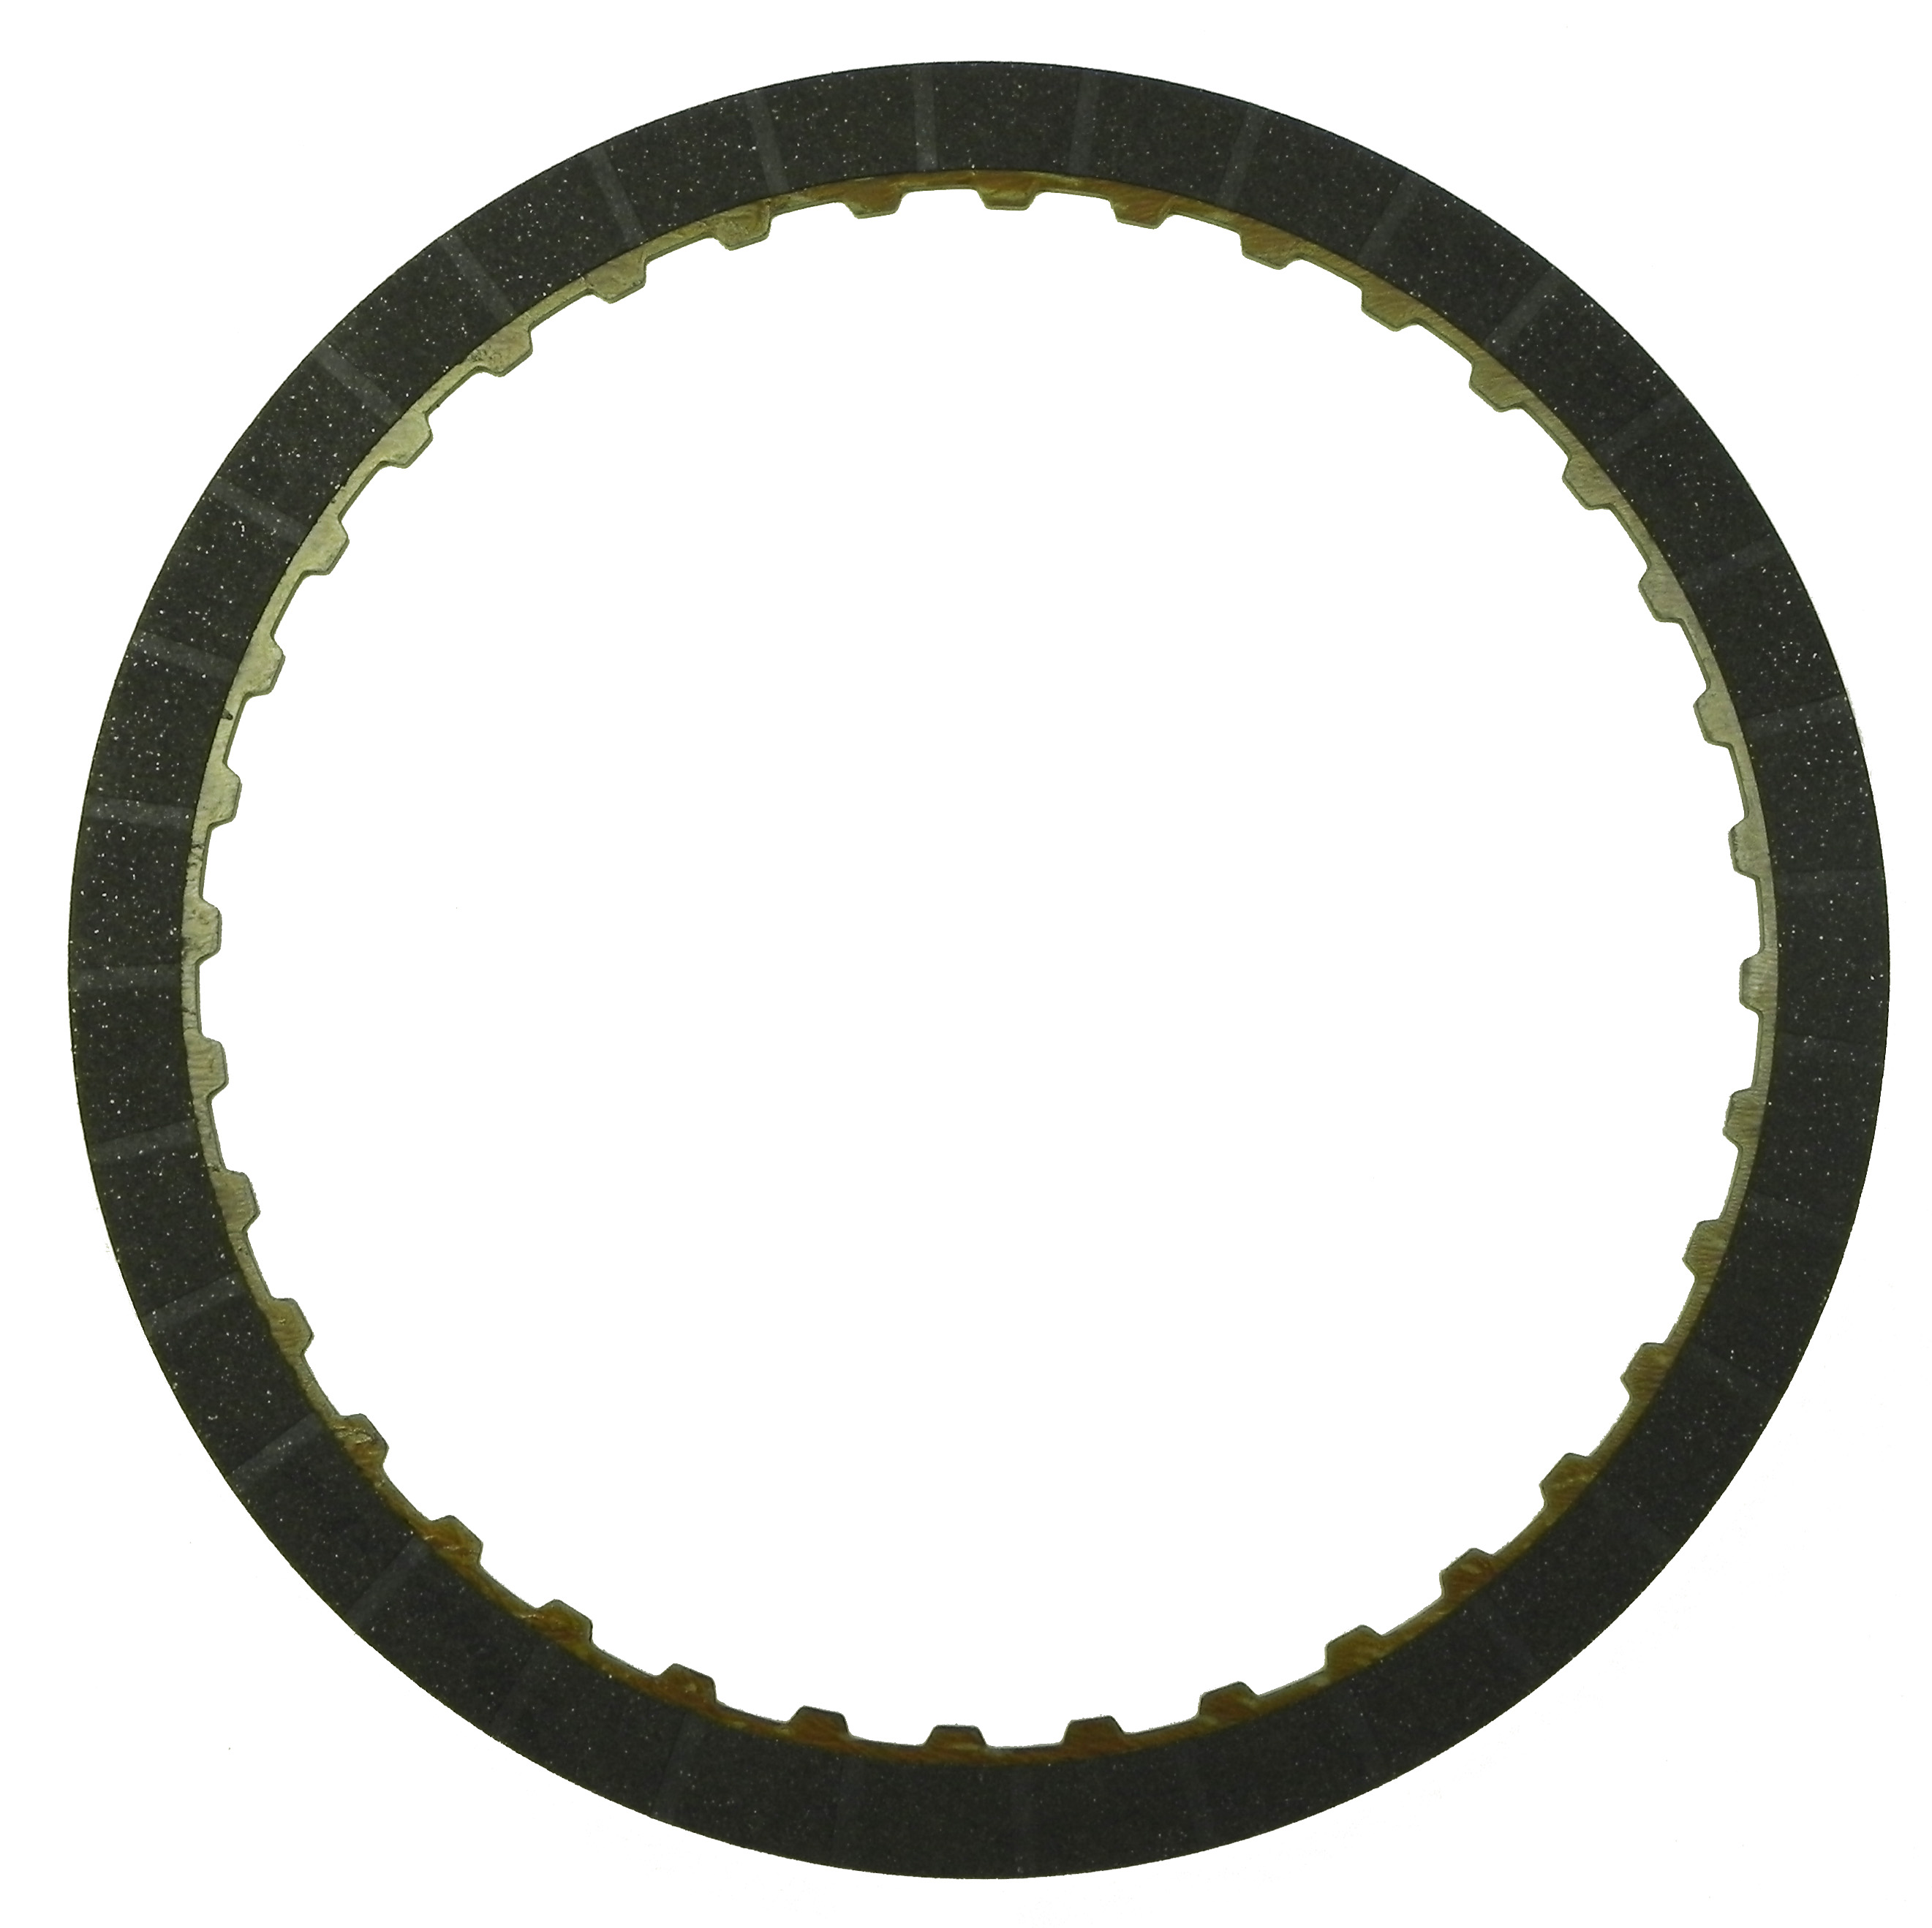 R558535 | 2007-ON Friction Clutch Plate High Energy 2nd, 6th, Single Single, ID Spline High Energy